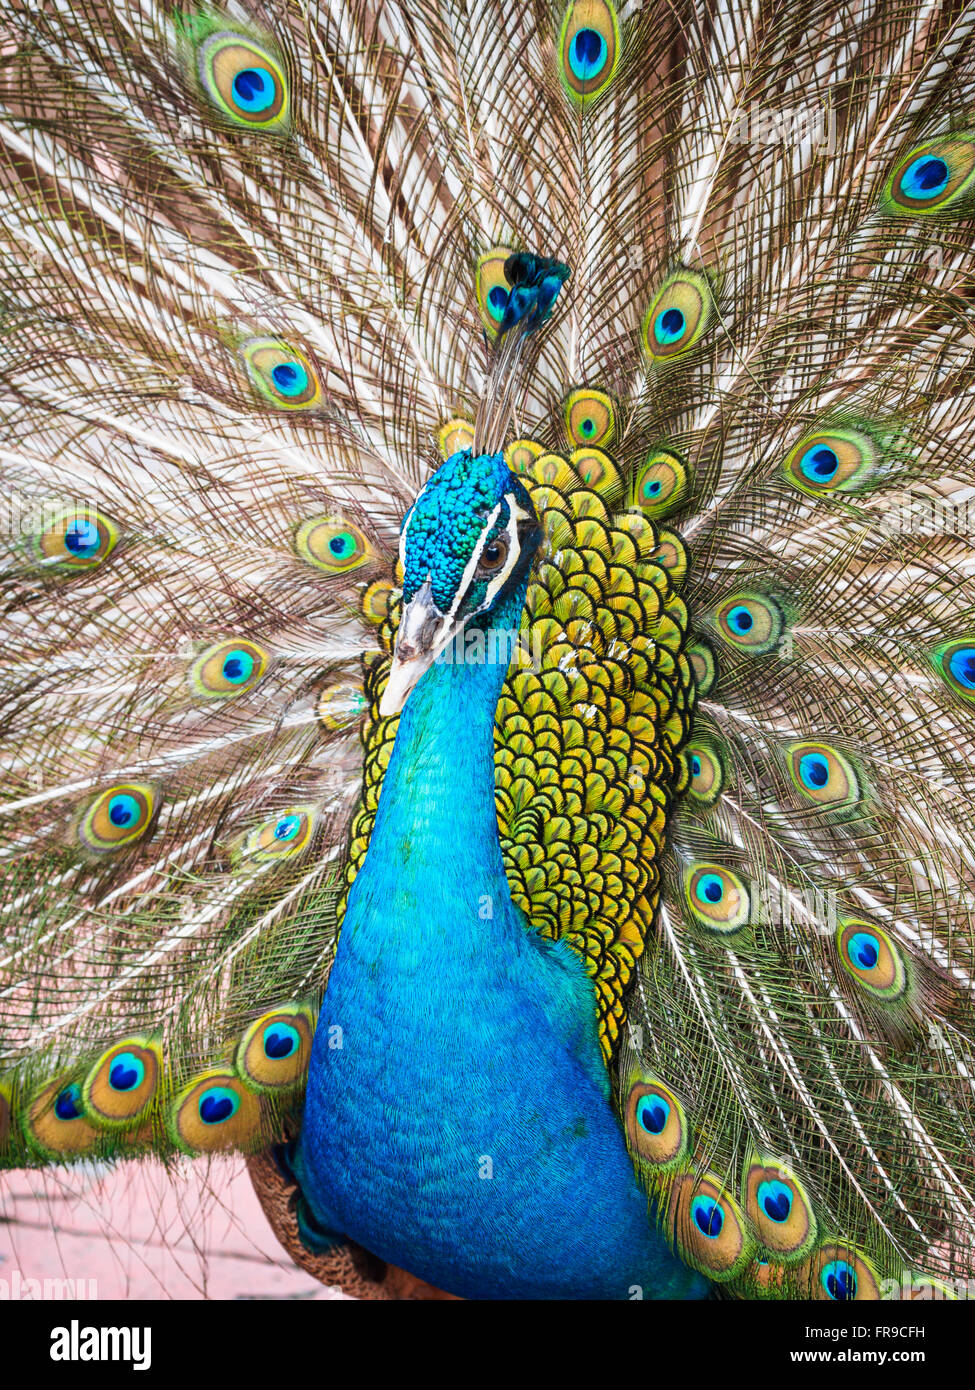 Male blue peacock (Pavo cristatus) displaying with its tail raised - Stock Image